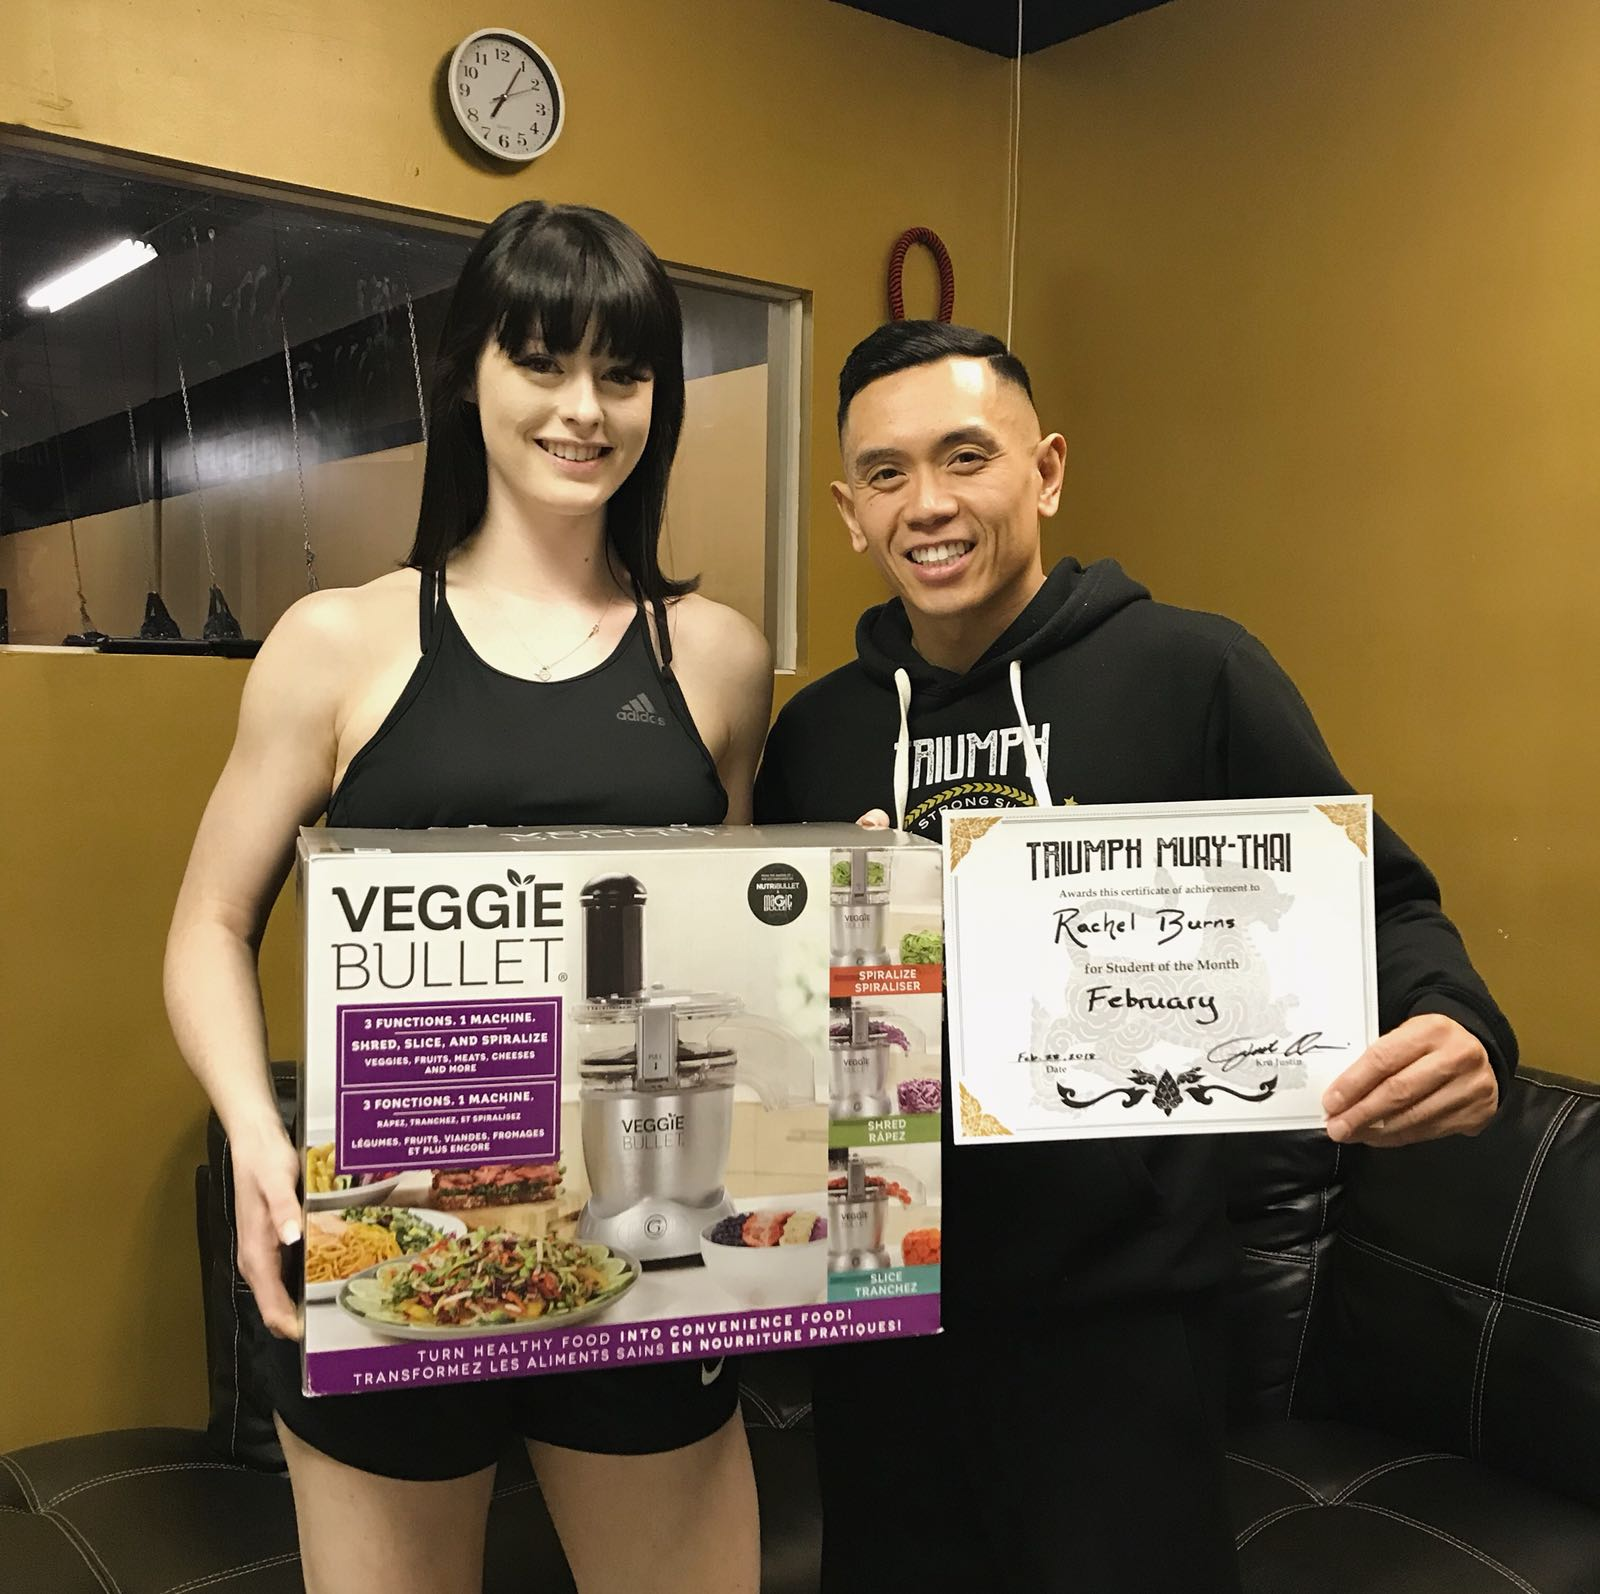 LE WIN! Congratulations to Rachel for winning February's student of the month AND the 6-Week Weight Loss Challenge. Keep up the good work and continue motivating the Triumph community!     #triumphmuaythai #muaythai #muaythaigirls #girlpower #fitness  #fitnessmotivation #fitnessgirl #motivation #scarborough #studentofthemonth #healthylifestyle #healthandfitness  #healthandwellness